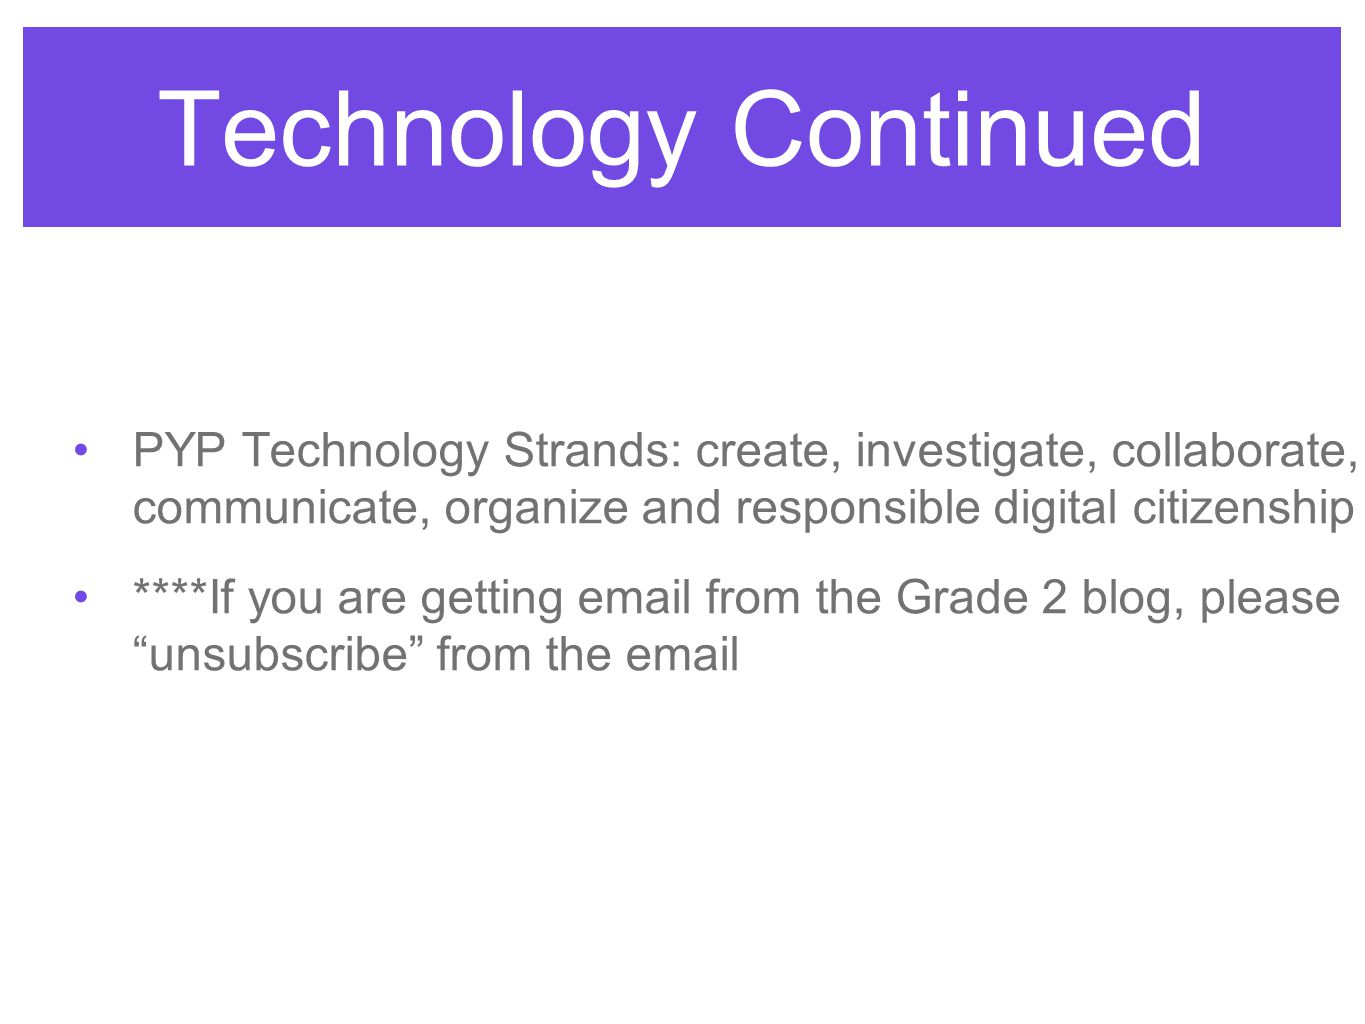 Technology Continued PYP Technology Strands: create, investigate, collaborate, communicate, organize and responsible digital citizenship ****If you are getting email from the Grade 2 blog, please unsubscribe from the email